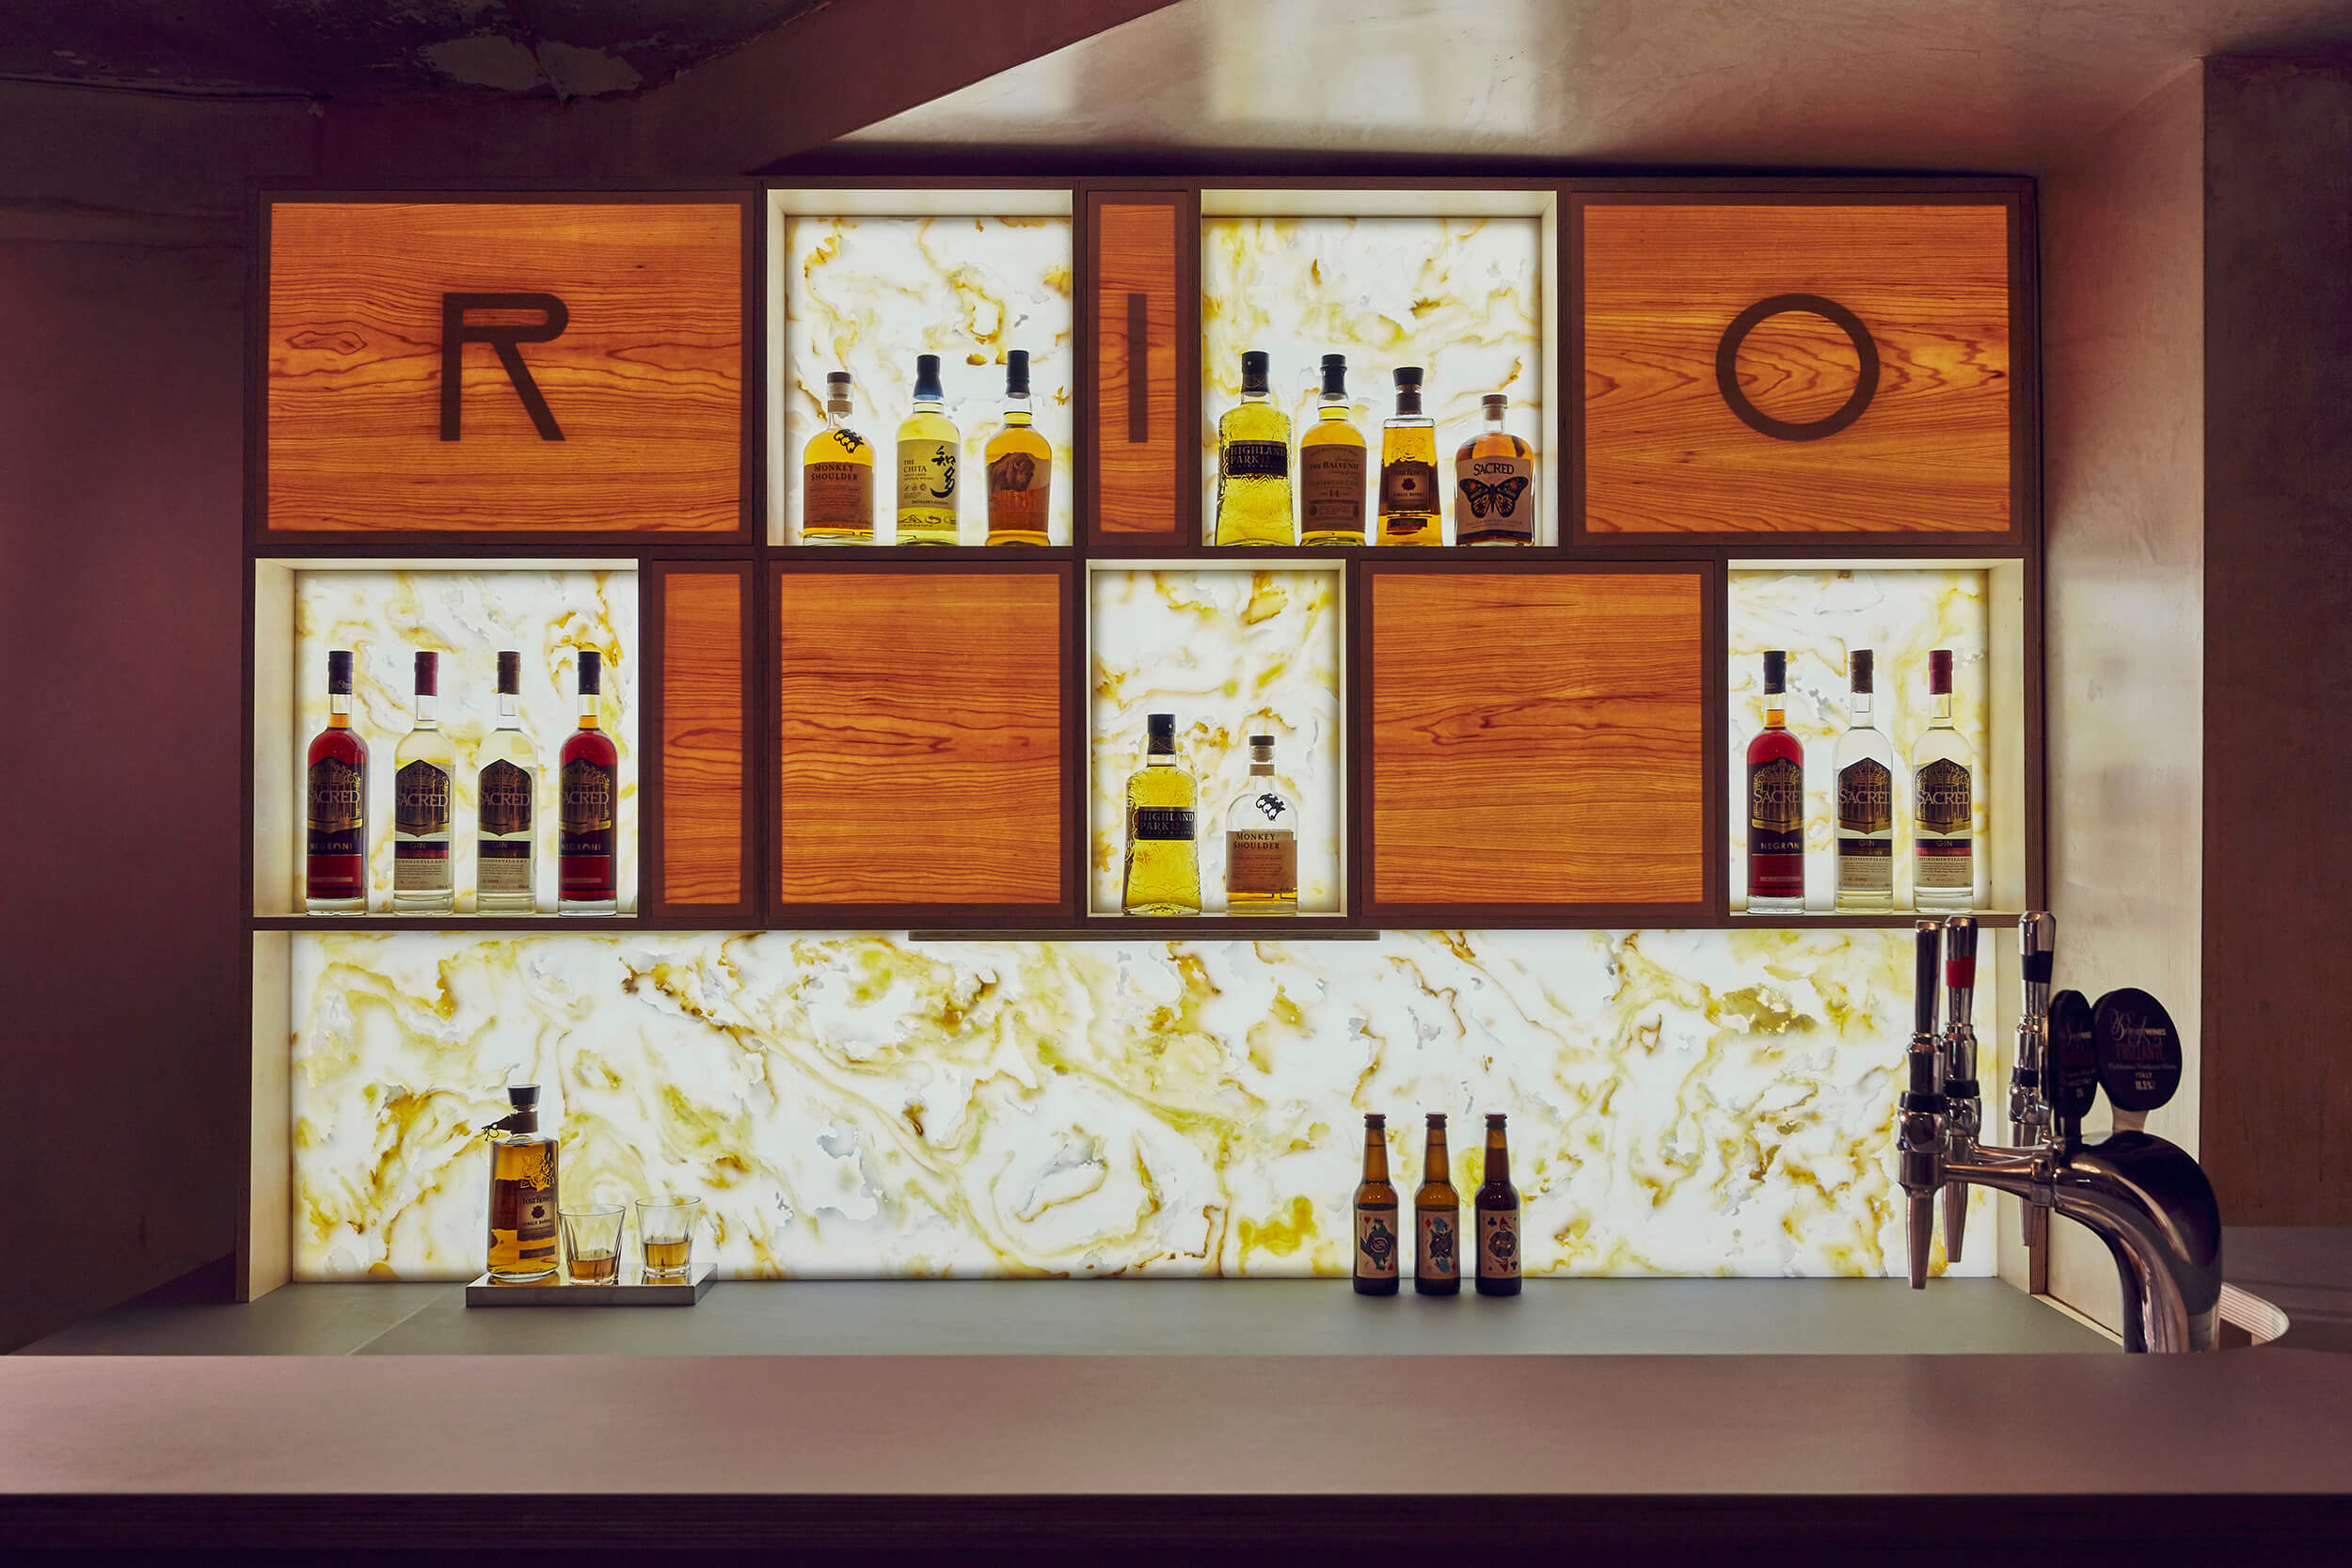 The back lit bar, inspired by the Gold Room from the Shining, showcases the selection of spirits.